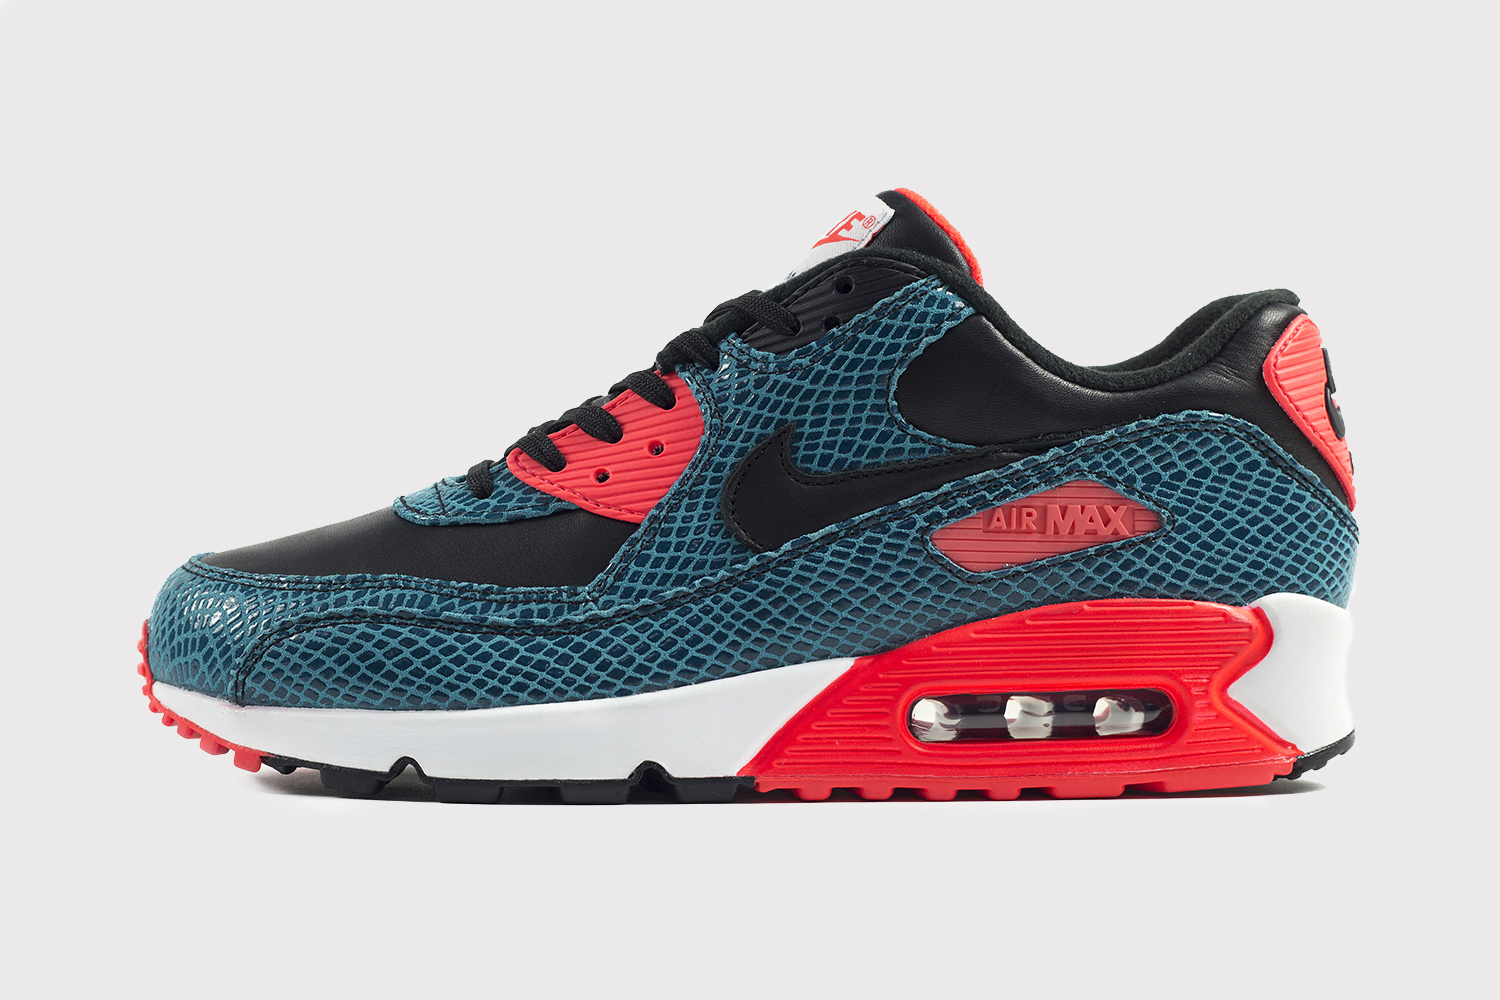 Nike Air Max 90 25th Anniversary Collection snake